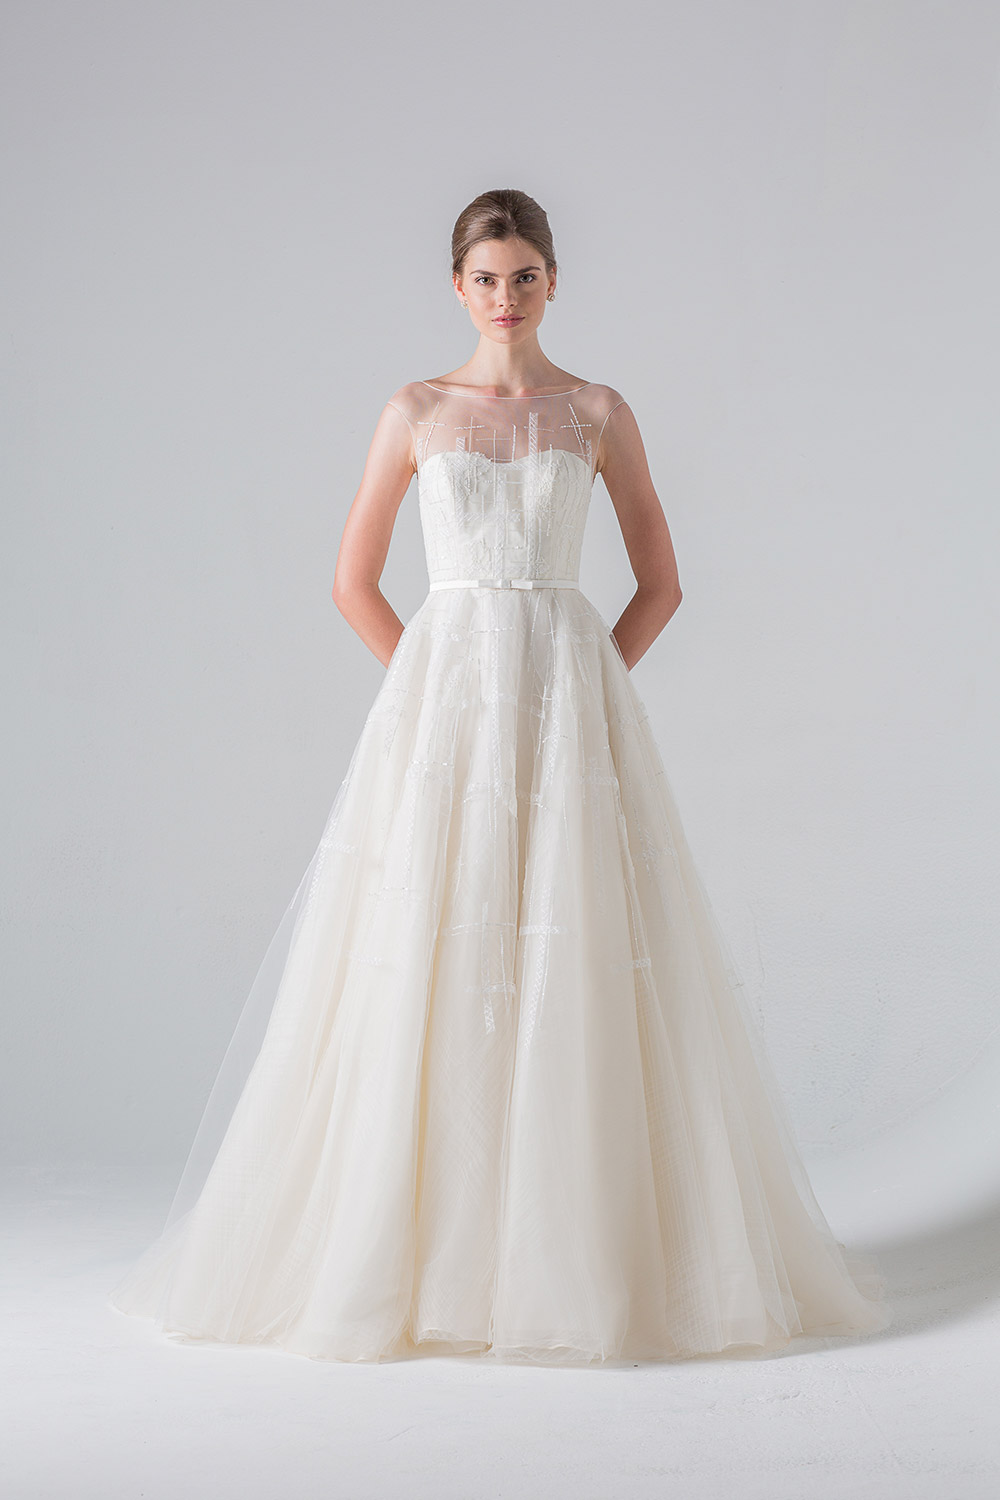 Promenade - Anne Barge Couture Spring 2016 Collection. www.theweddingnotebook.com